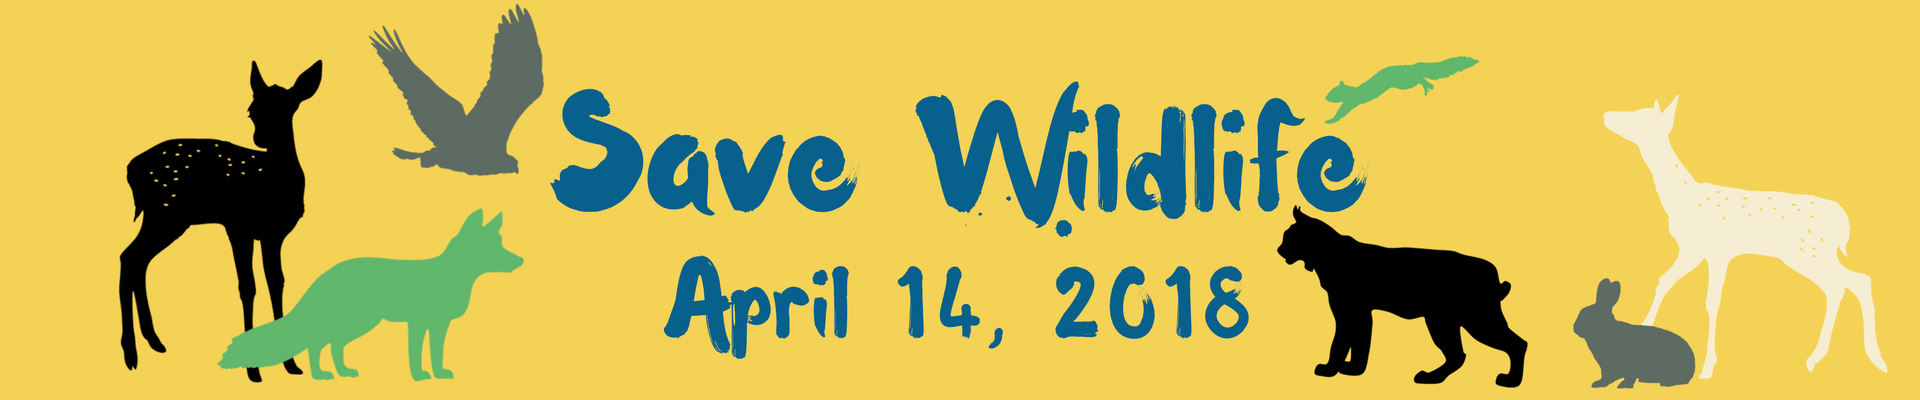 Join Wildwoods April 14, 2018 at the Great Lakes Aquarium in Duluth, MN and help save wildlife